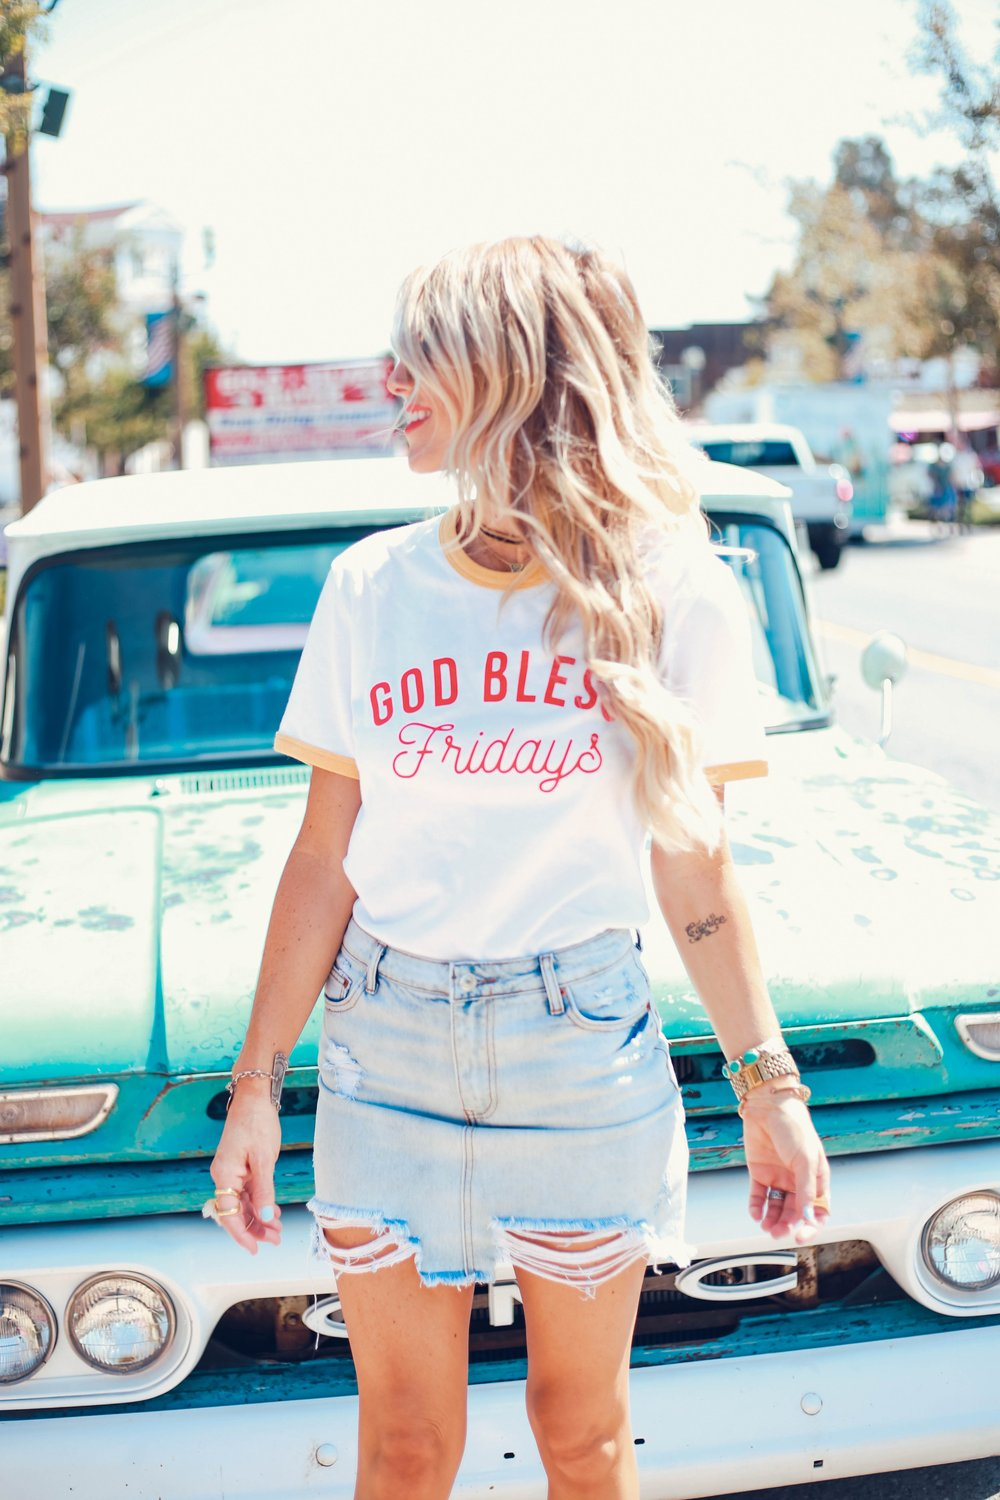 This tee is from Cloth + Palm and they are having a sale this weekend!